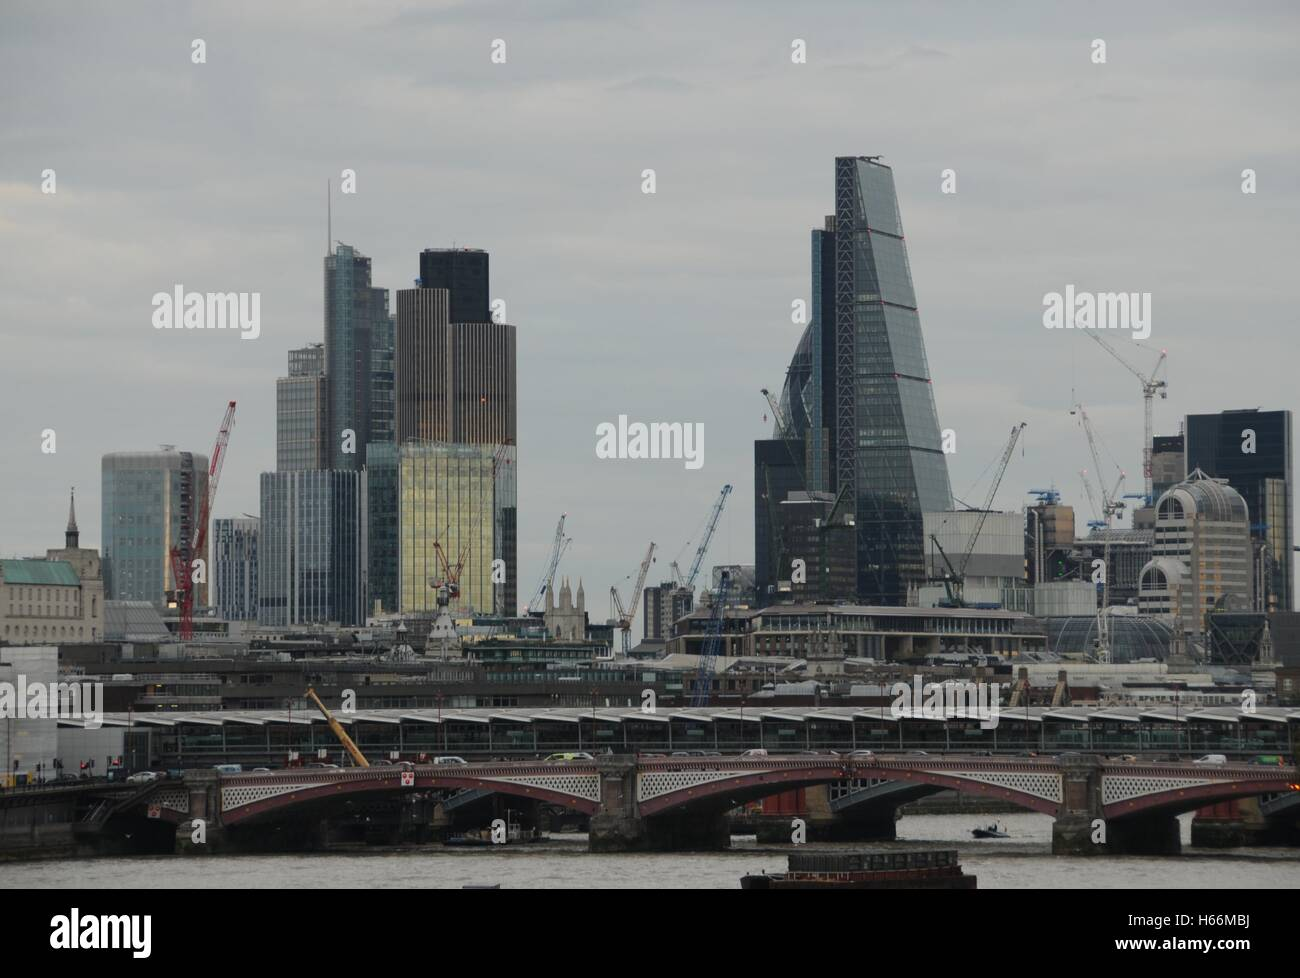 A view of the City's skyscrapers and London's river Thames. - Stock Image